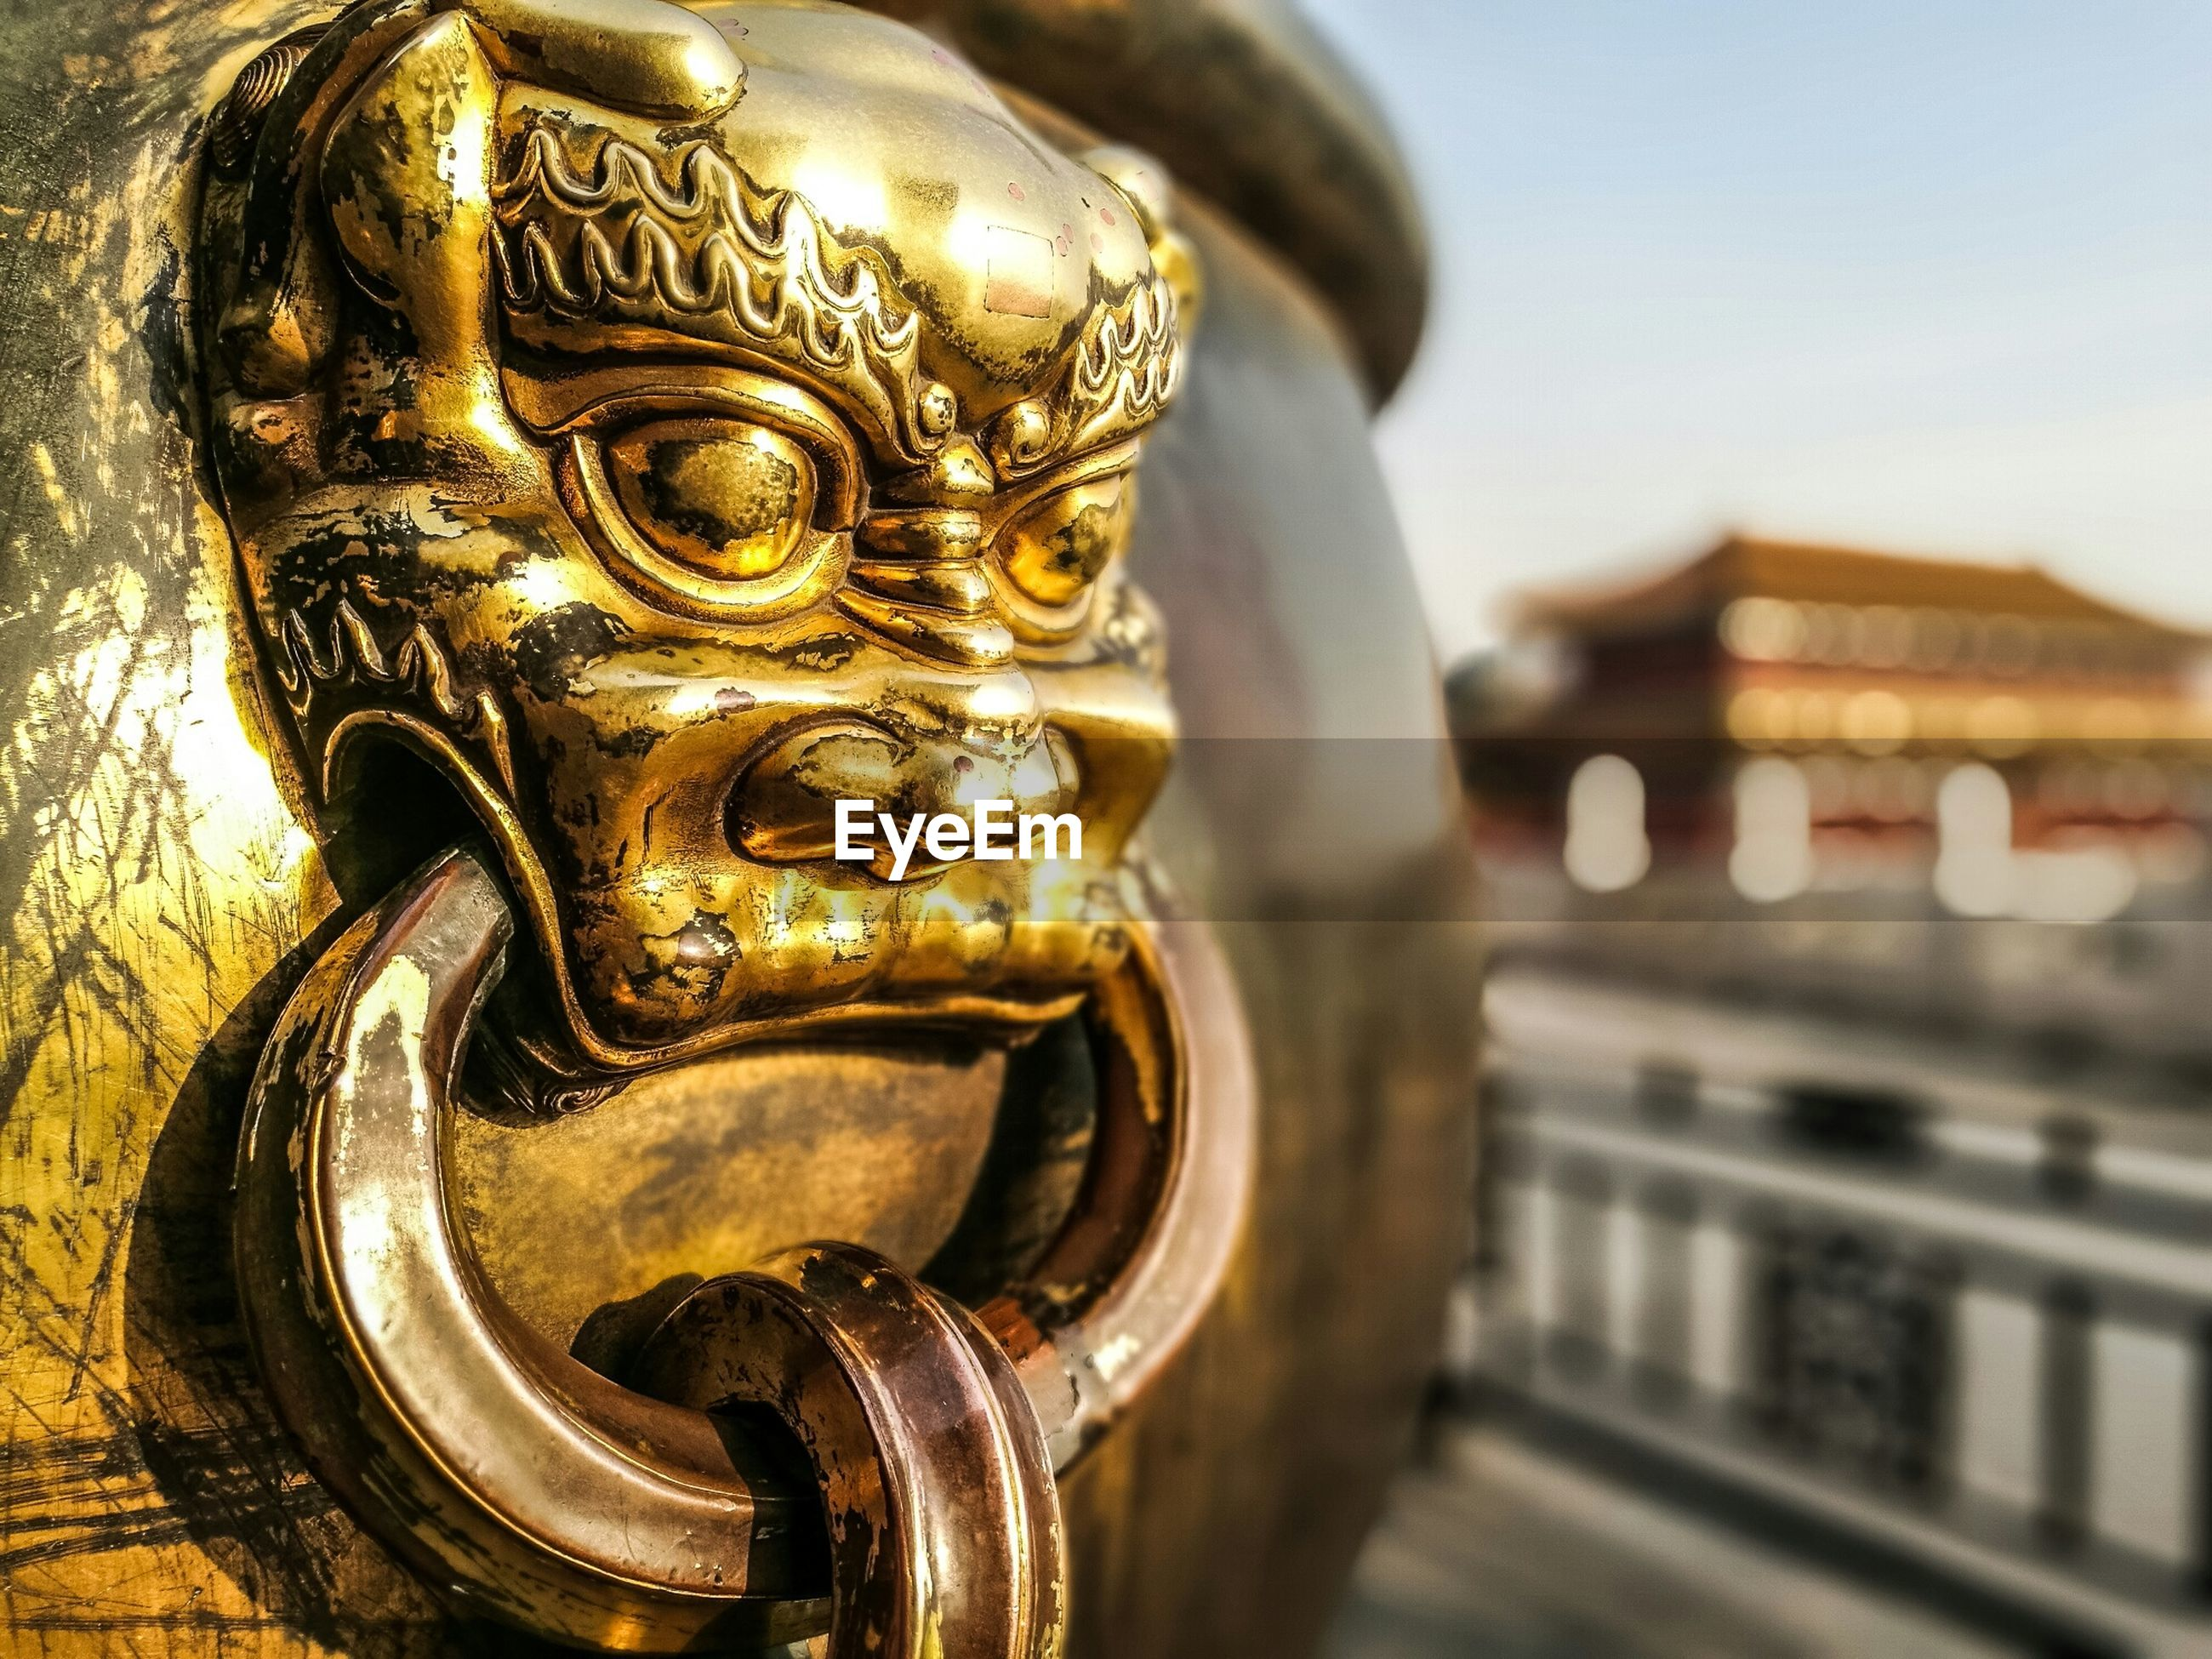 metal, focus on foreground, architecture, close-up, built structure, building exterior, metallic, history, railing, city, no people, day, transportation, travel, part of, outdoors, connection, famous place, sculpture, old